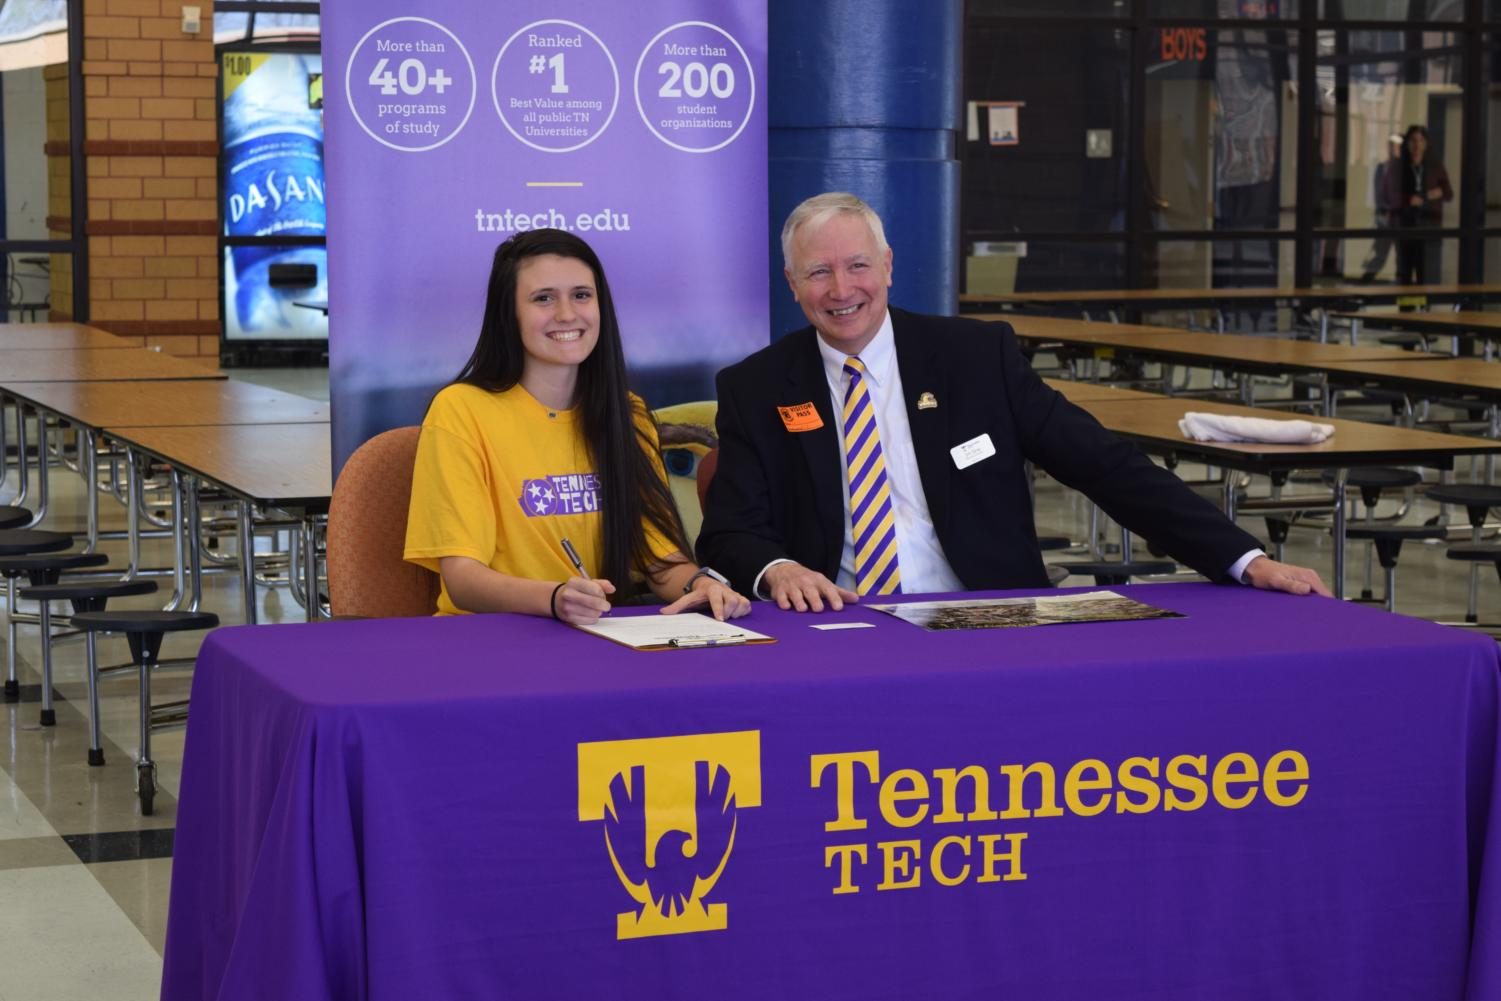 Emily+Glass+will+attend+Tennessee+Tech+University+in+the+fall.